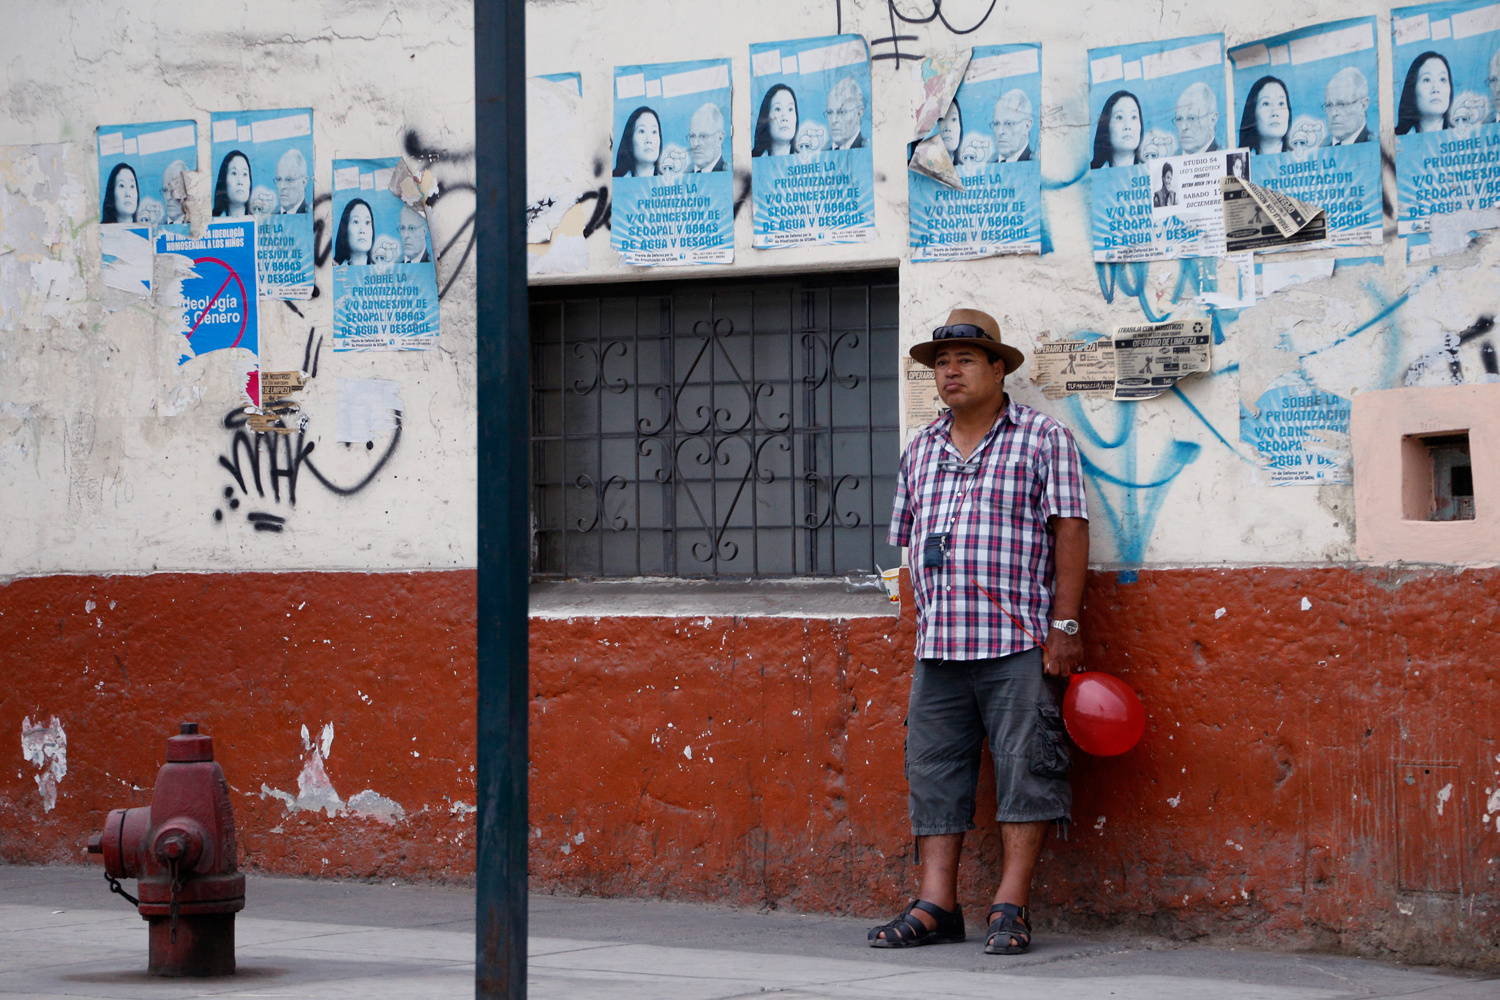 A sulky expression crosses a man's face as he leans against a wall, holding but almost dropping a red balloon. He is wearing a chequered shirt and a brimmed hat. The wall is covered in posters carrying various political messages. There are almost a dozen posters protesting the privatisation of Lima's water supply. A single poster, half torn off, objects to the alleged teaching of the 'gender ideology' in schools.